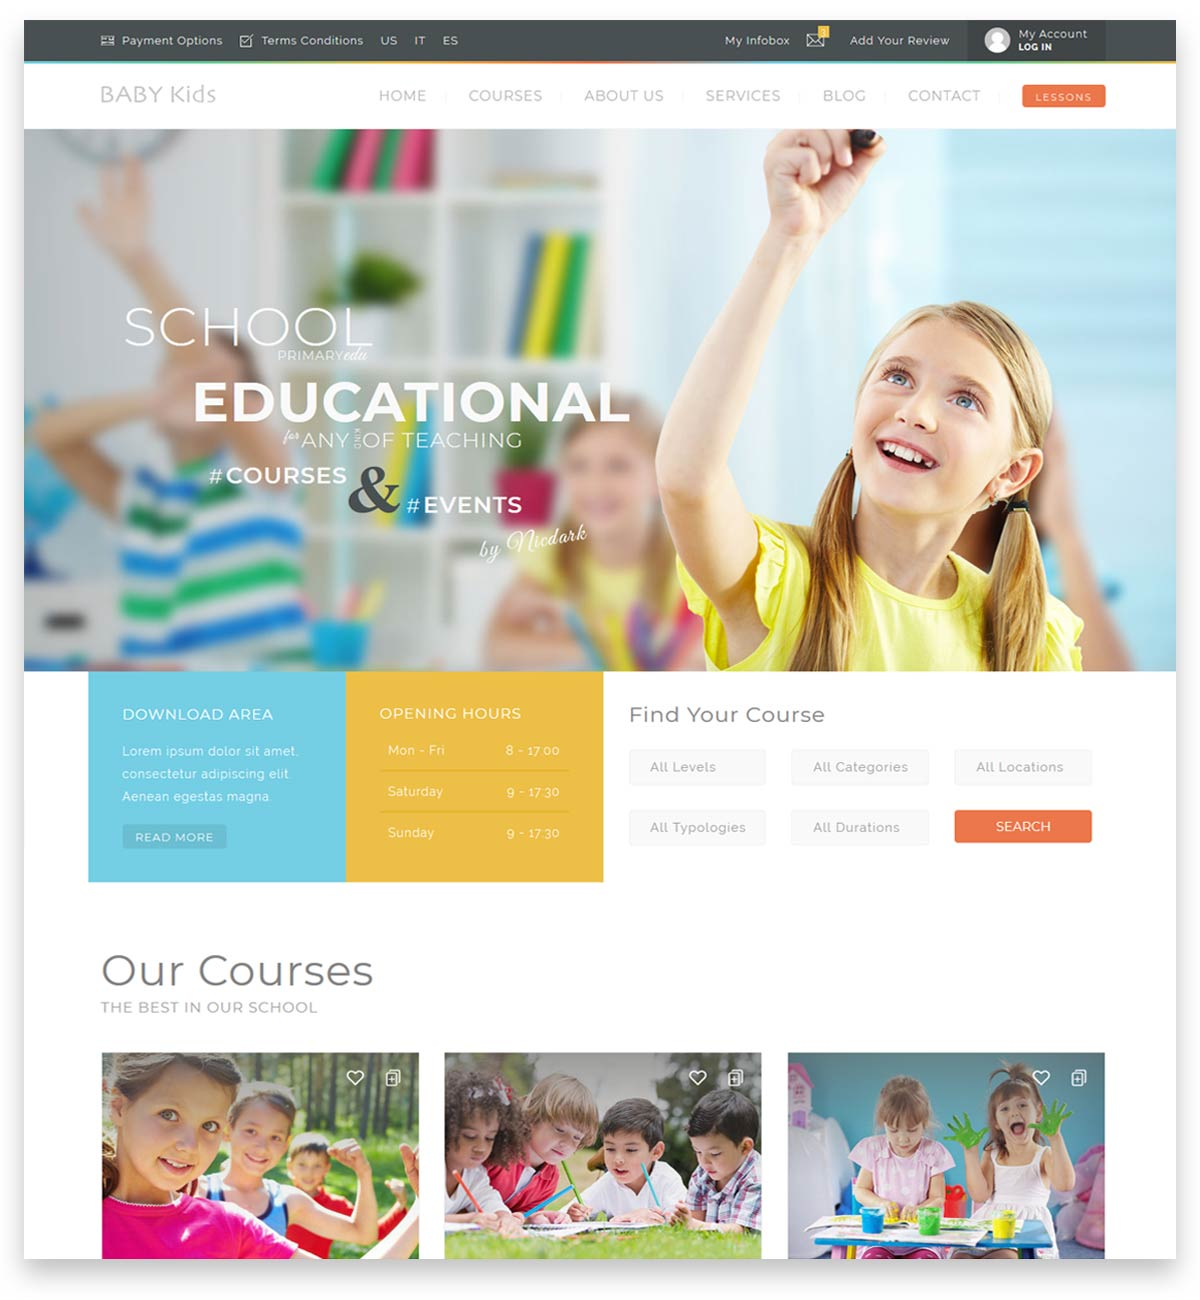 Baby Kids - Education Primary School For Children theme